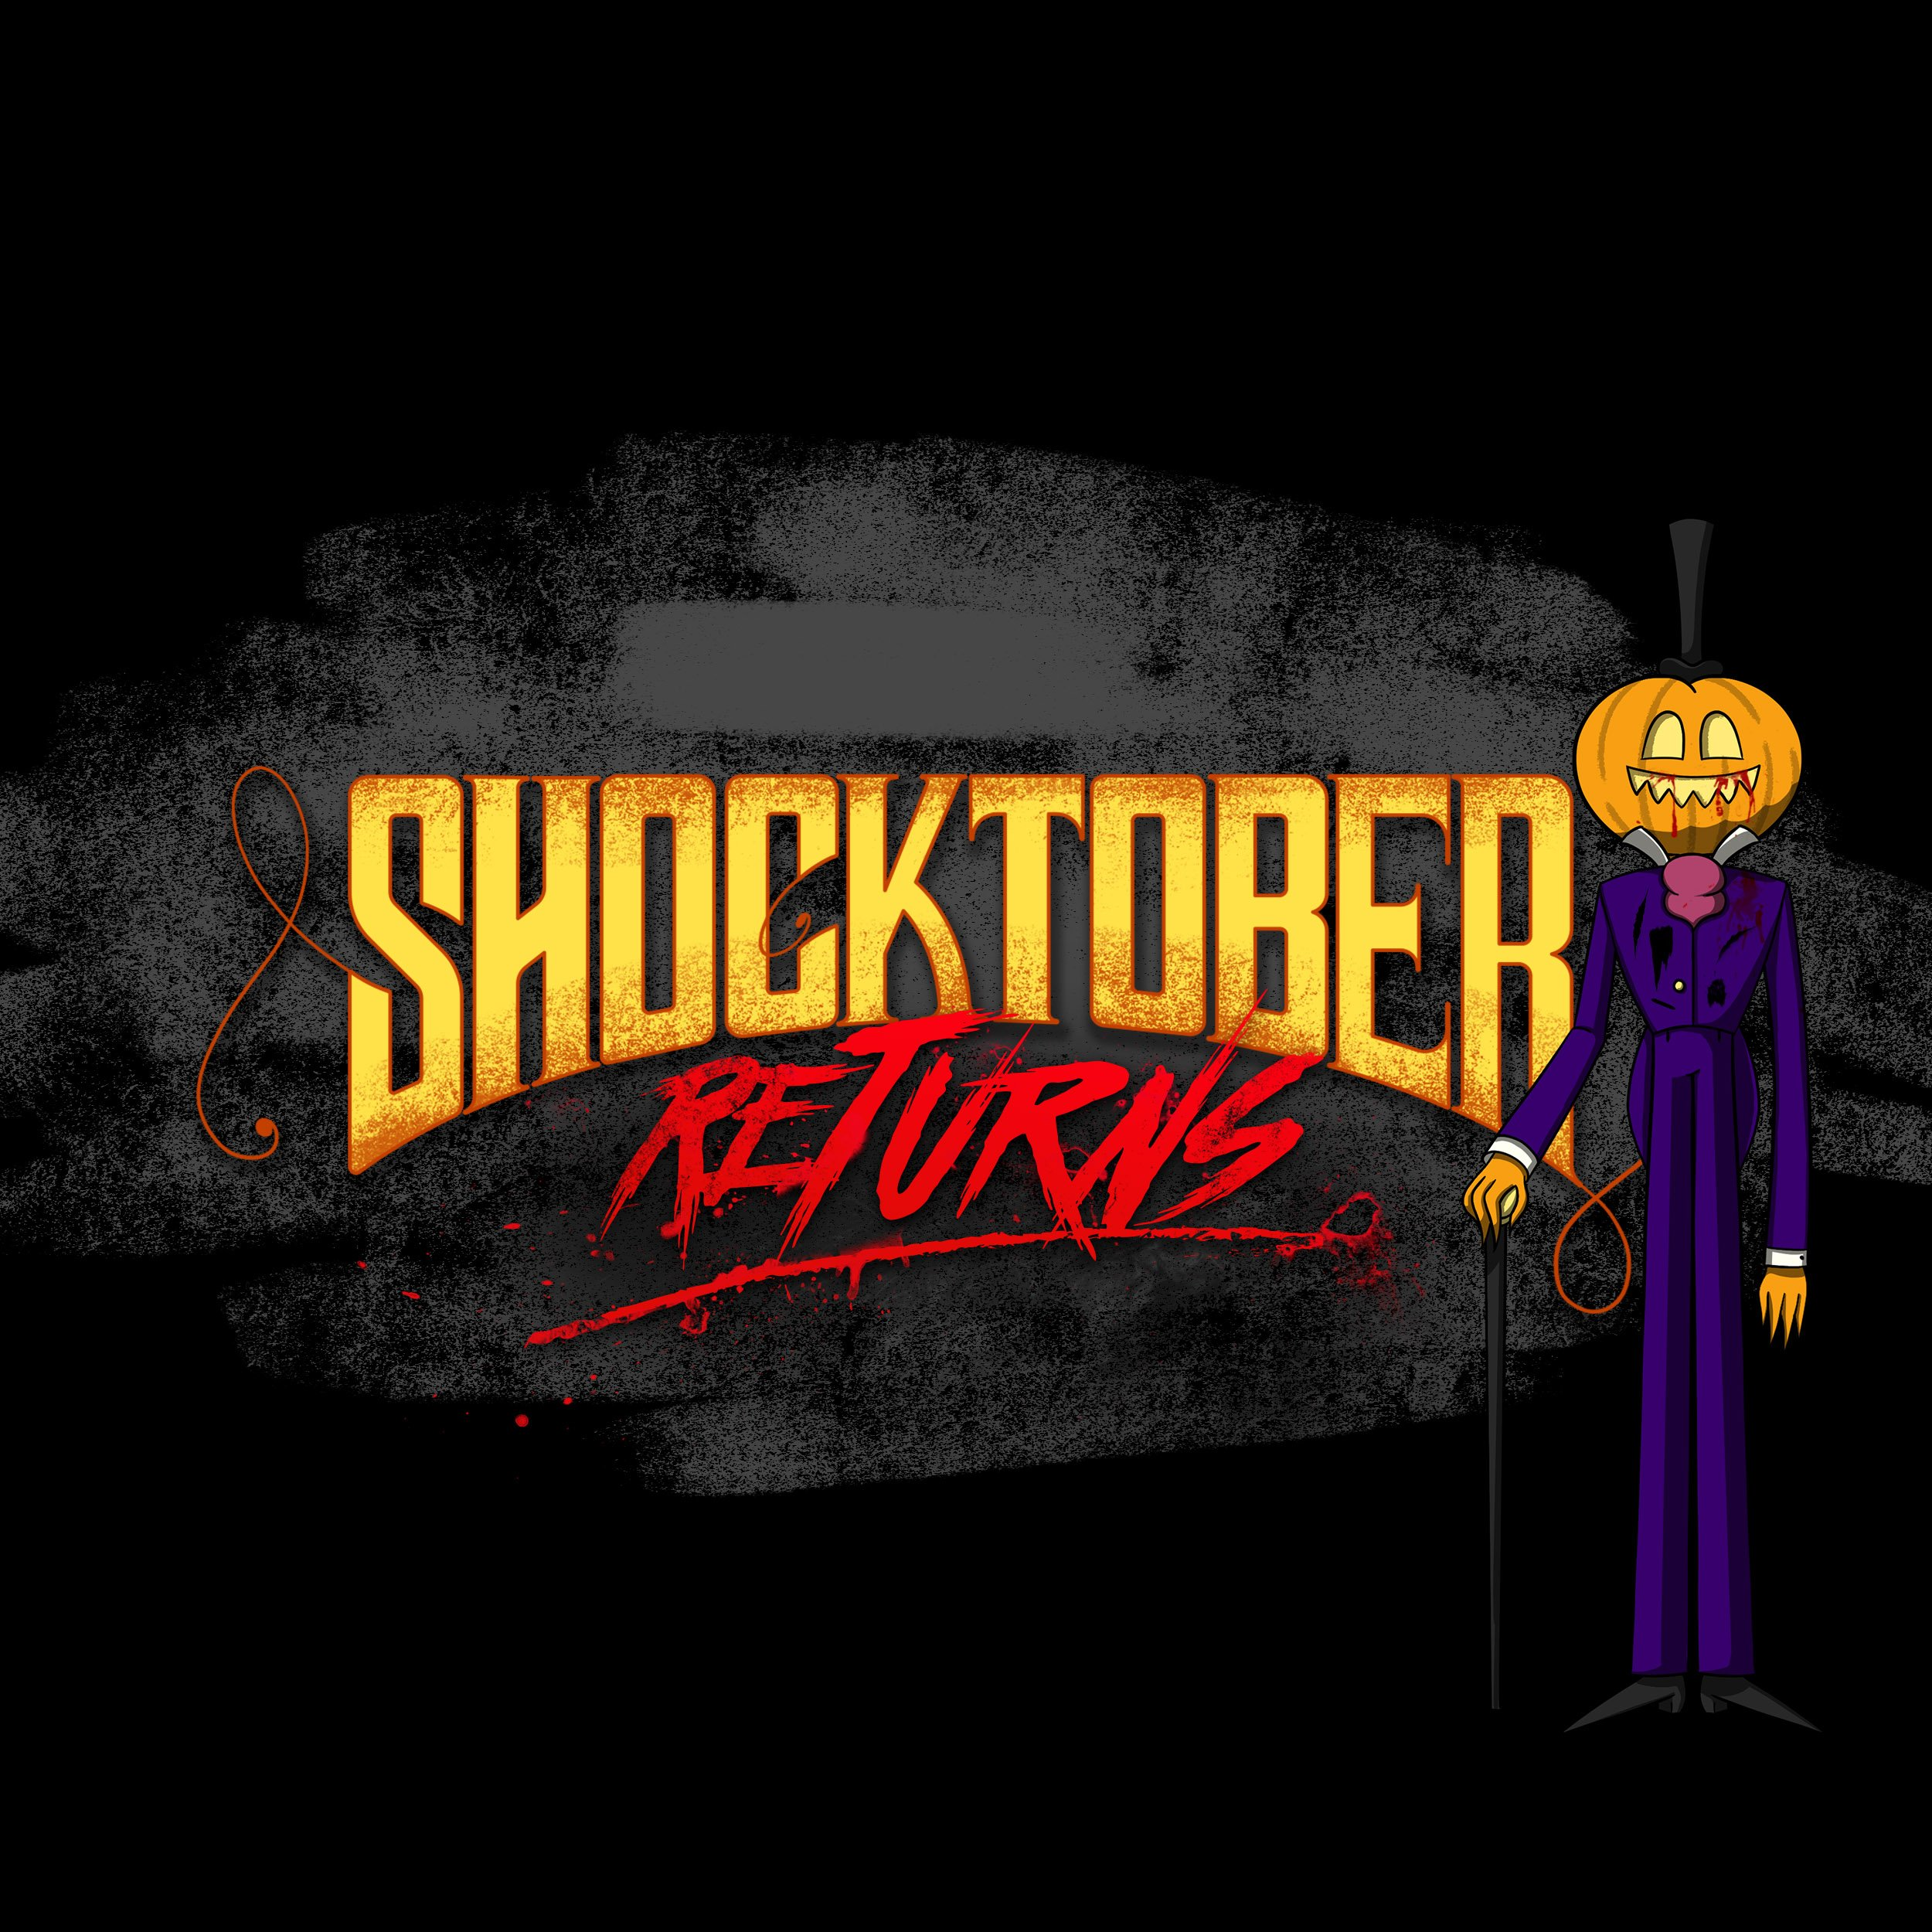 Our Shocktober Blu-ray Sale returns for a no tricks, only treats season!